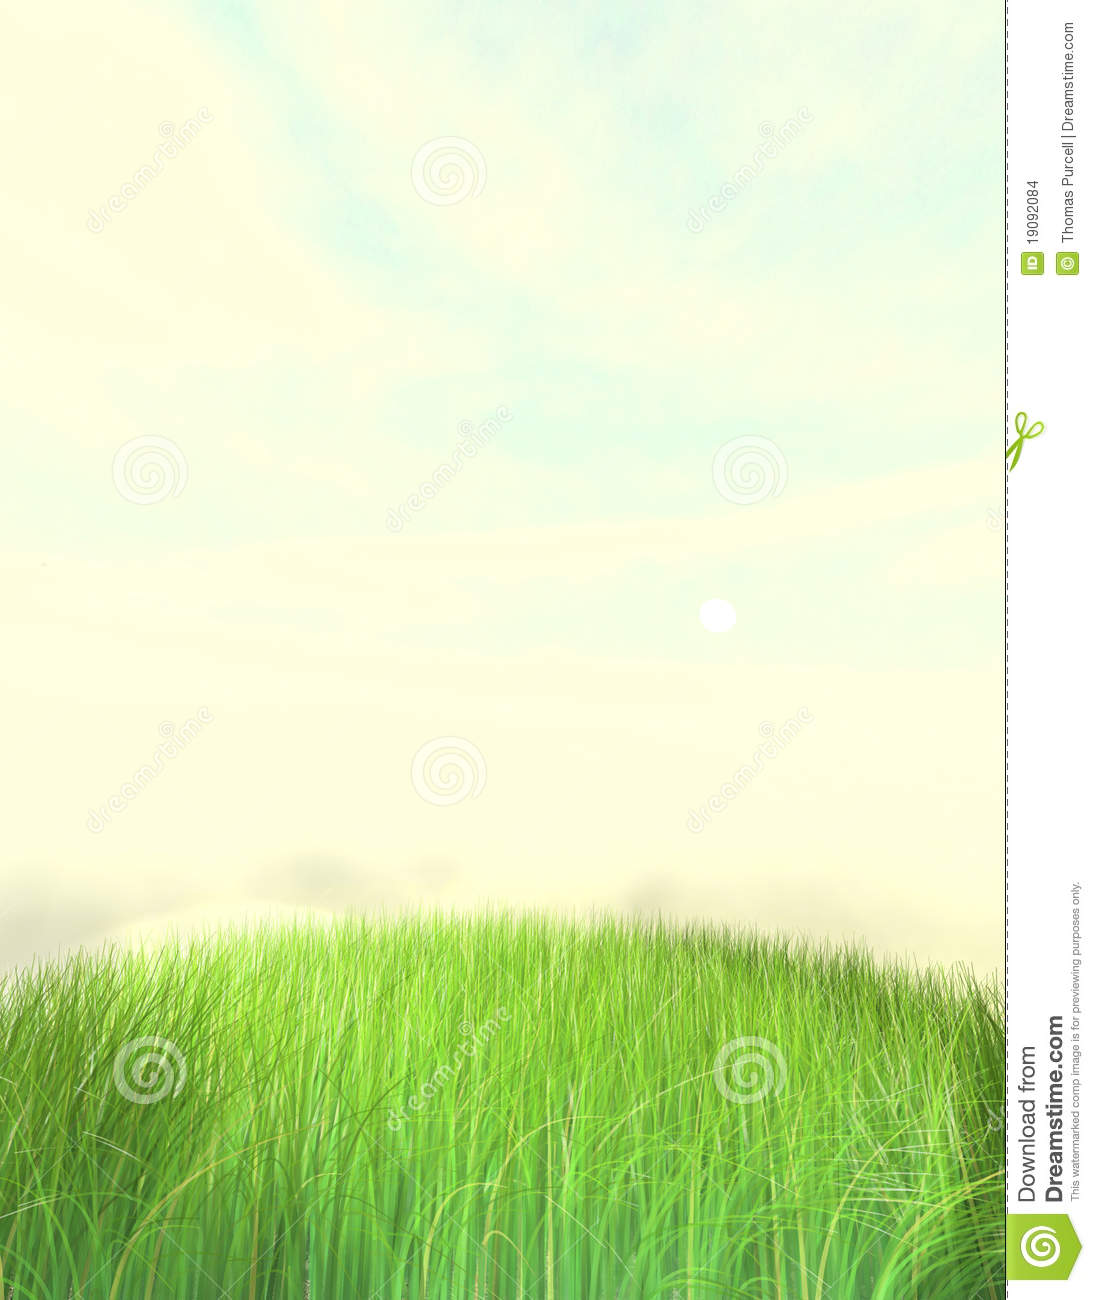 lawn care backgrounds more information grass background for template lawn care backgrounds